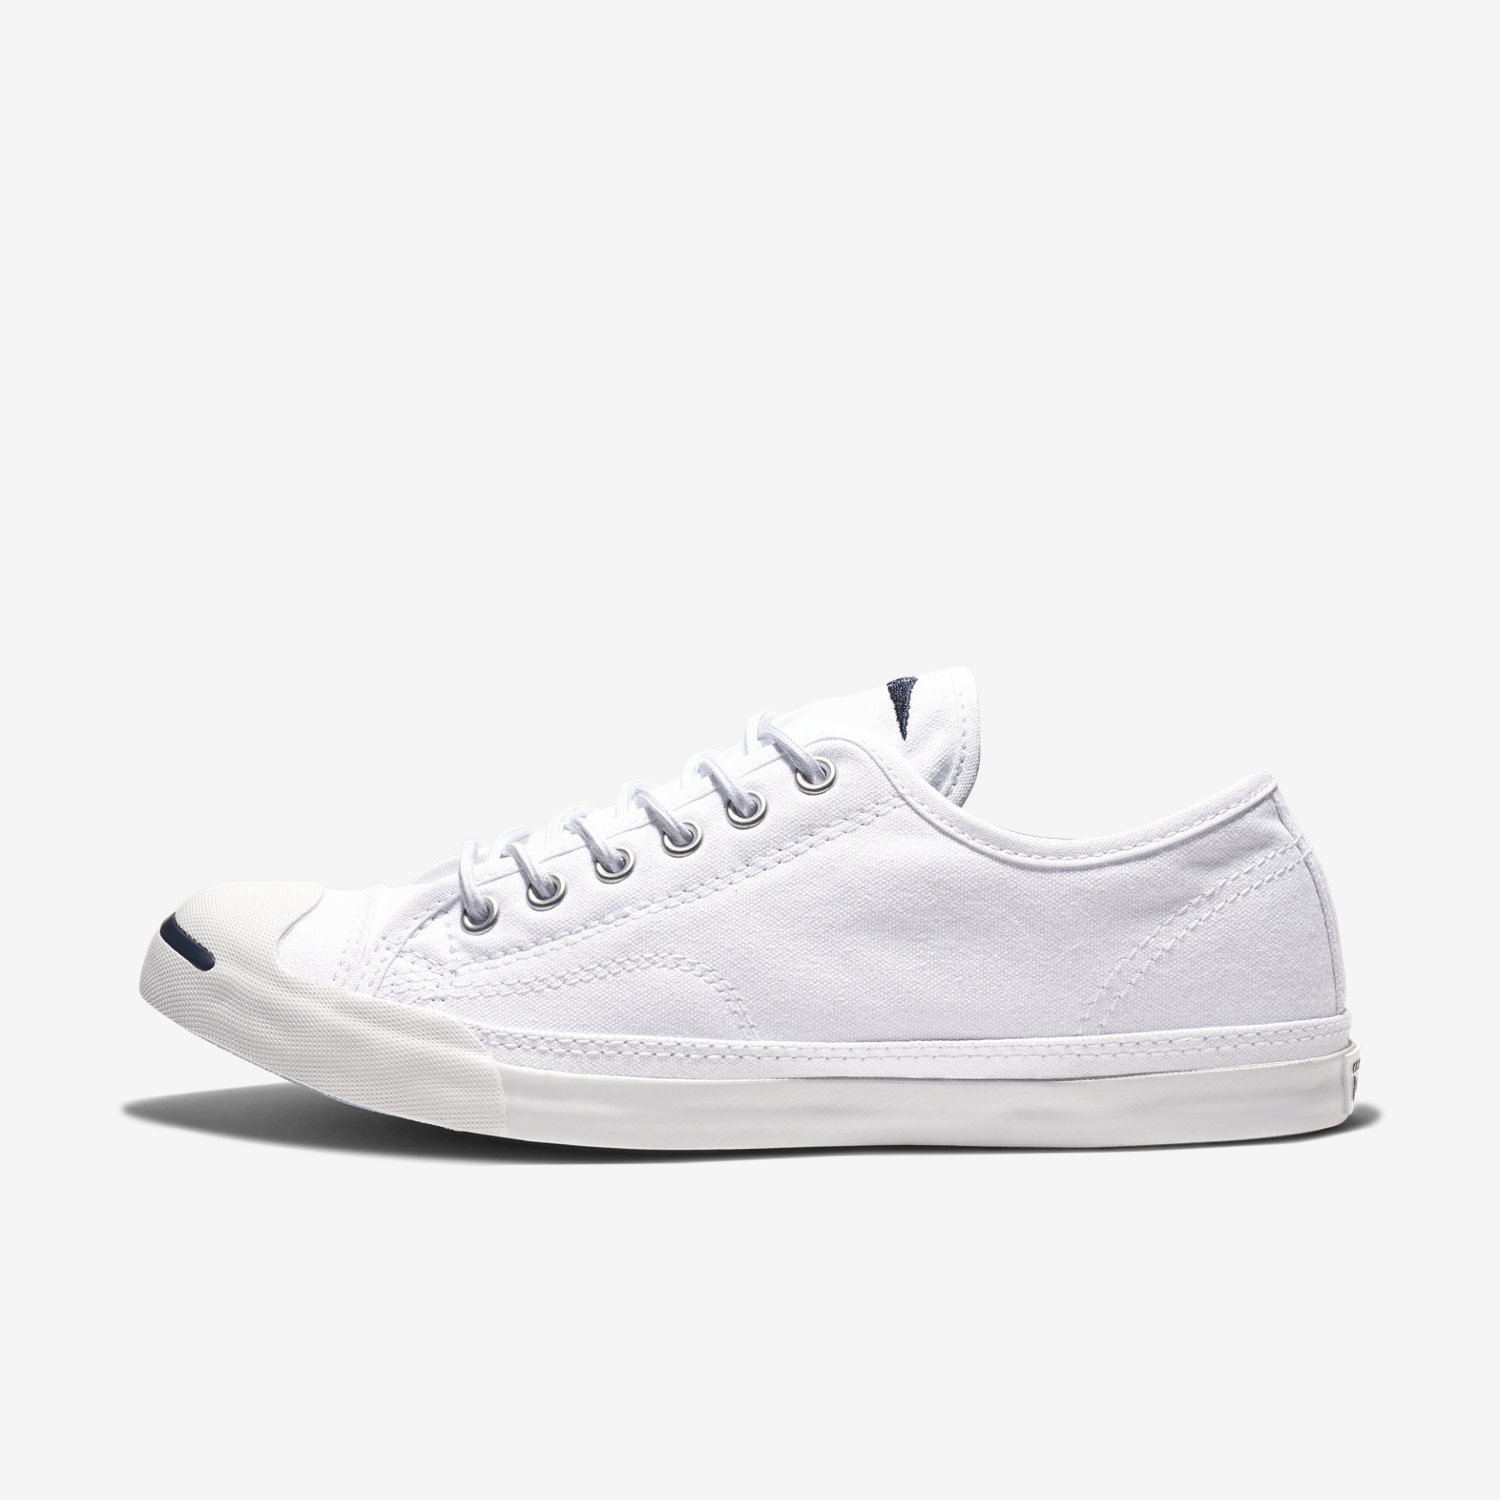 741fdaaf3455 new style converse jack purcell low profile d7788 d81fc